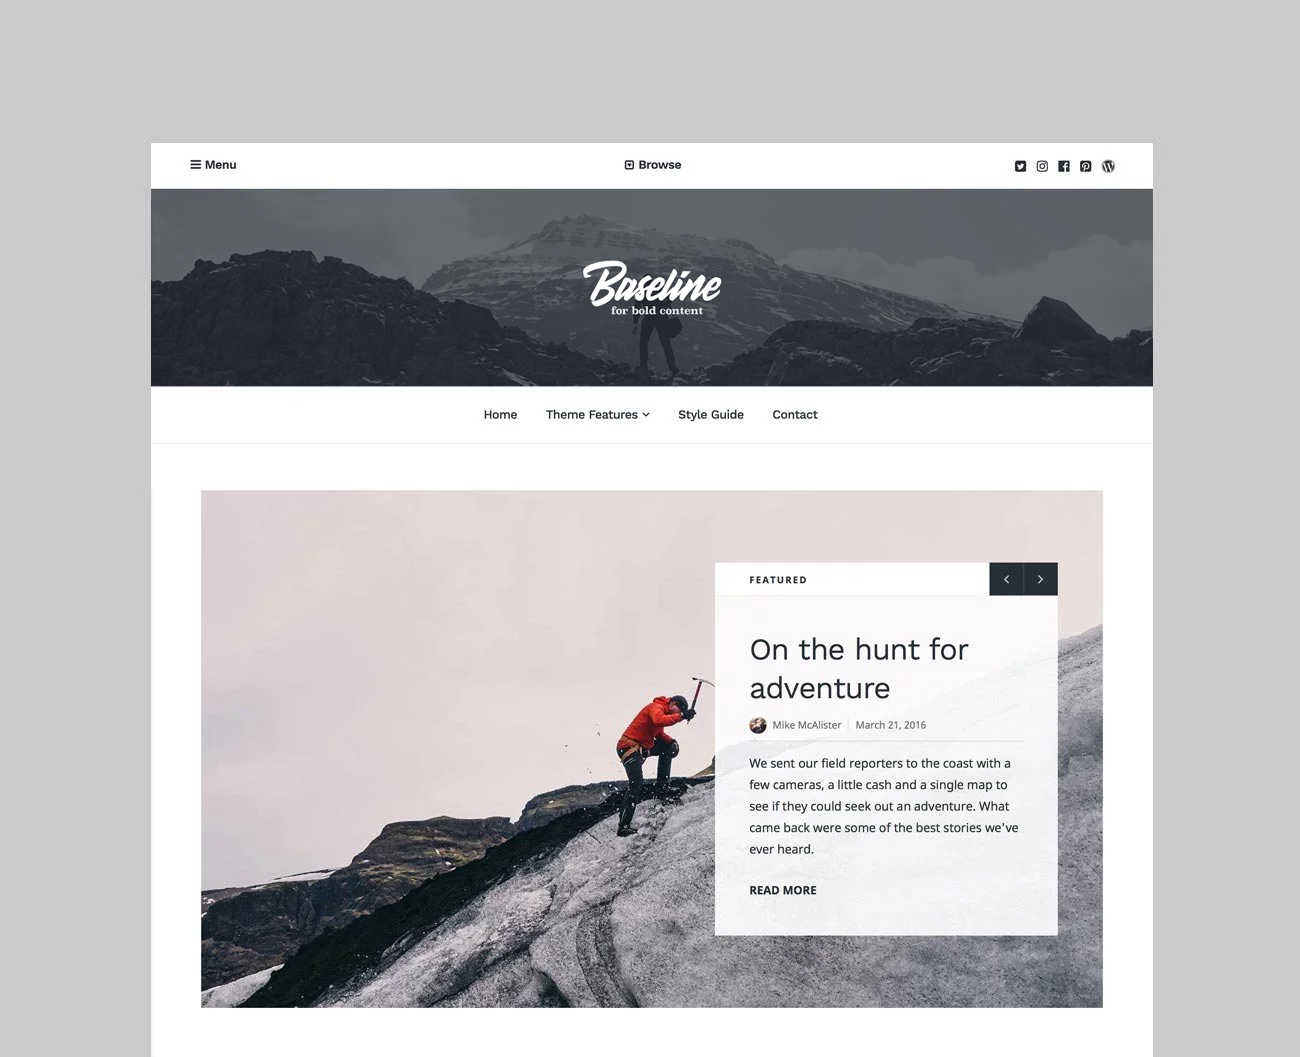 baseline-featured-content